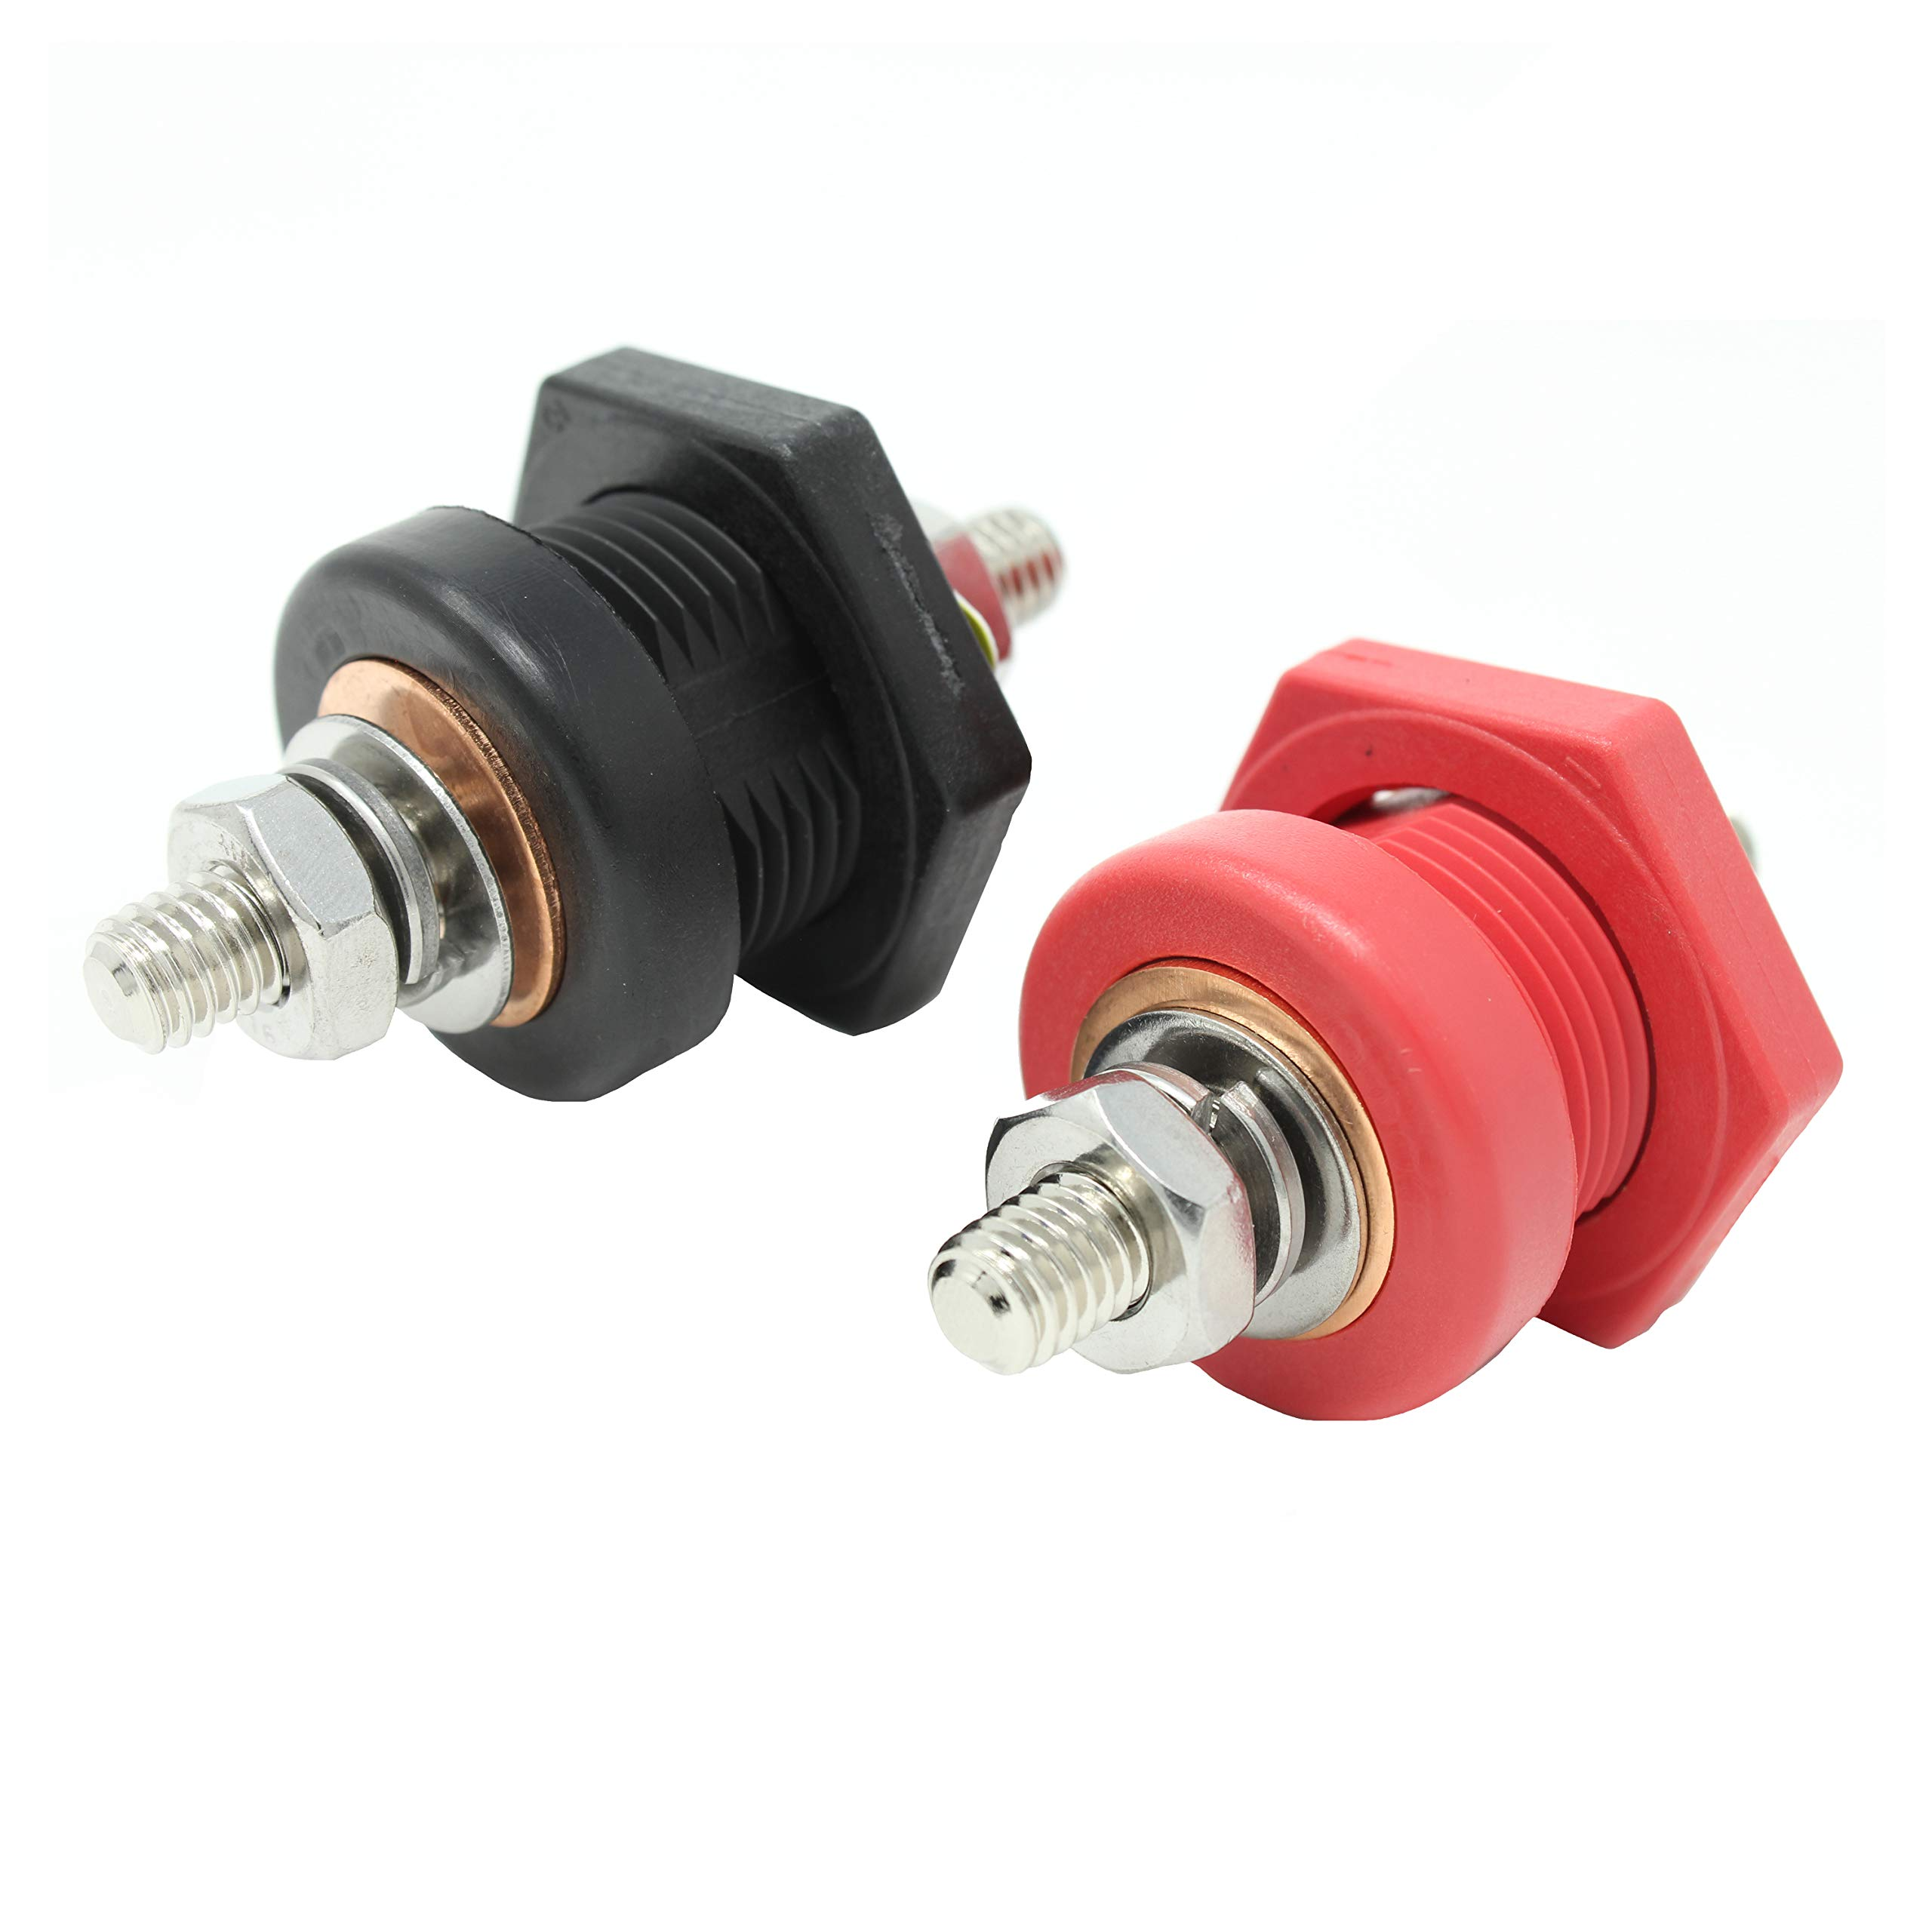 "Thru Panel Battery Cable Bulkhead Connectors with Copper Core 3/8"" Terminal Post, Red and Black"